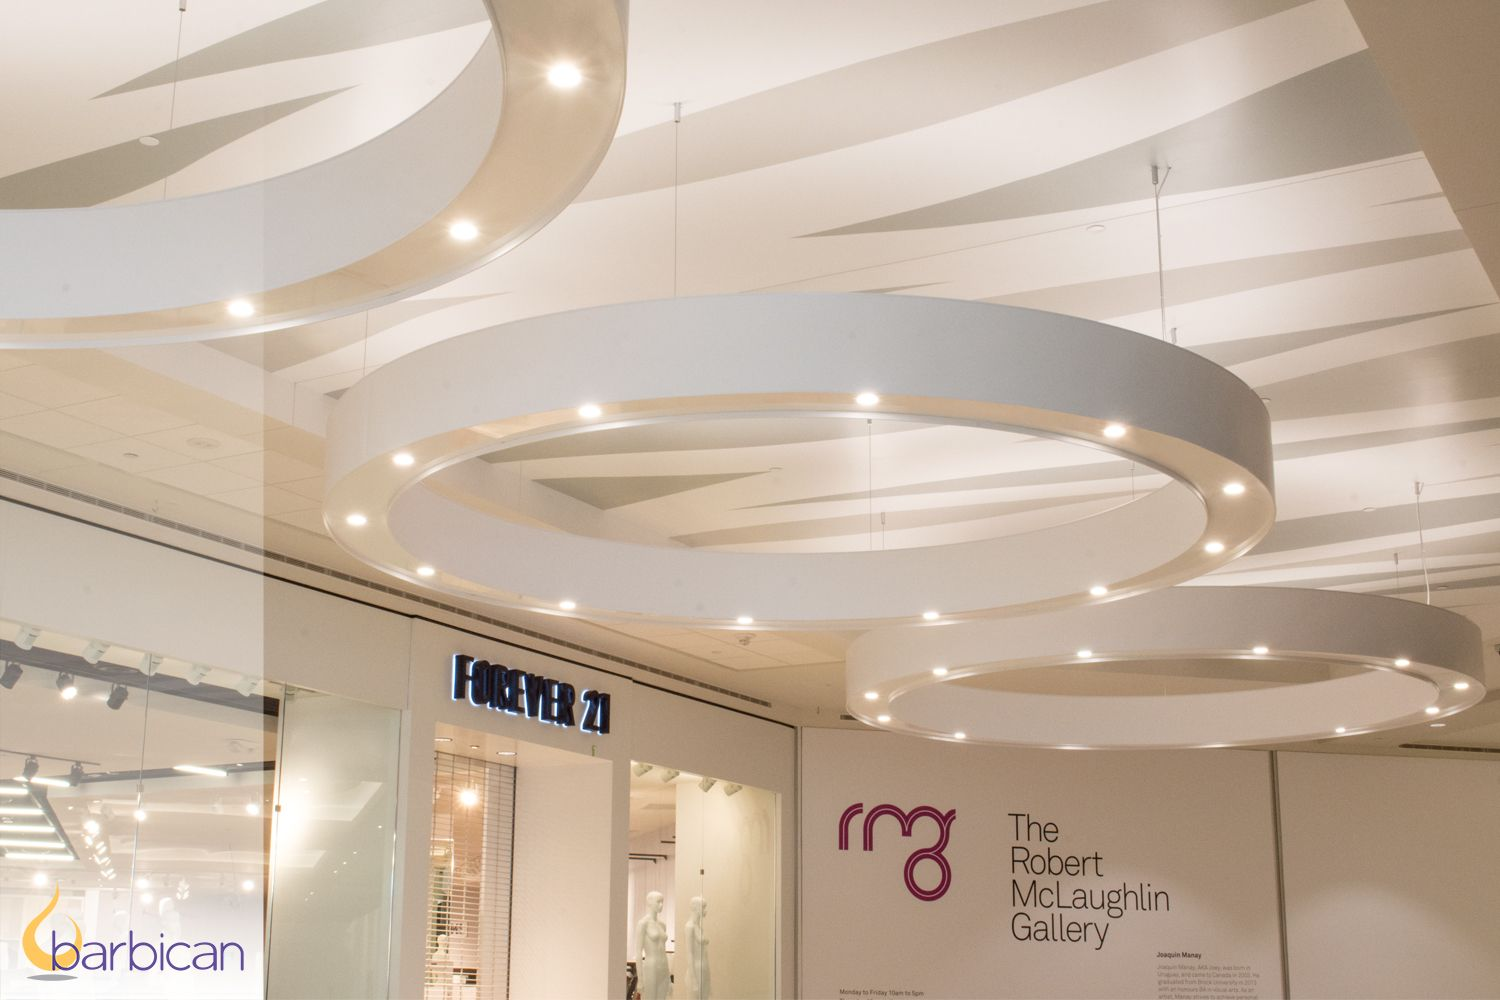 Installation custom led pendants by barbican oshawa centre oshawa on decorative lighting